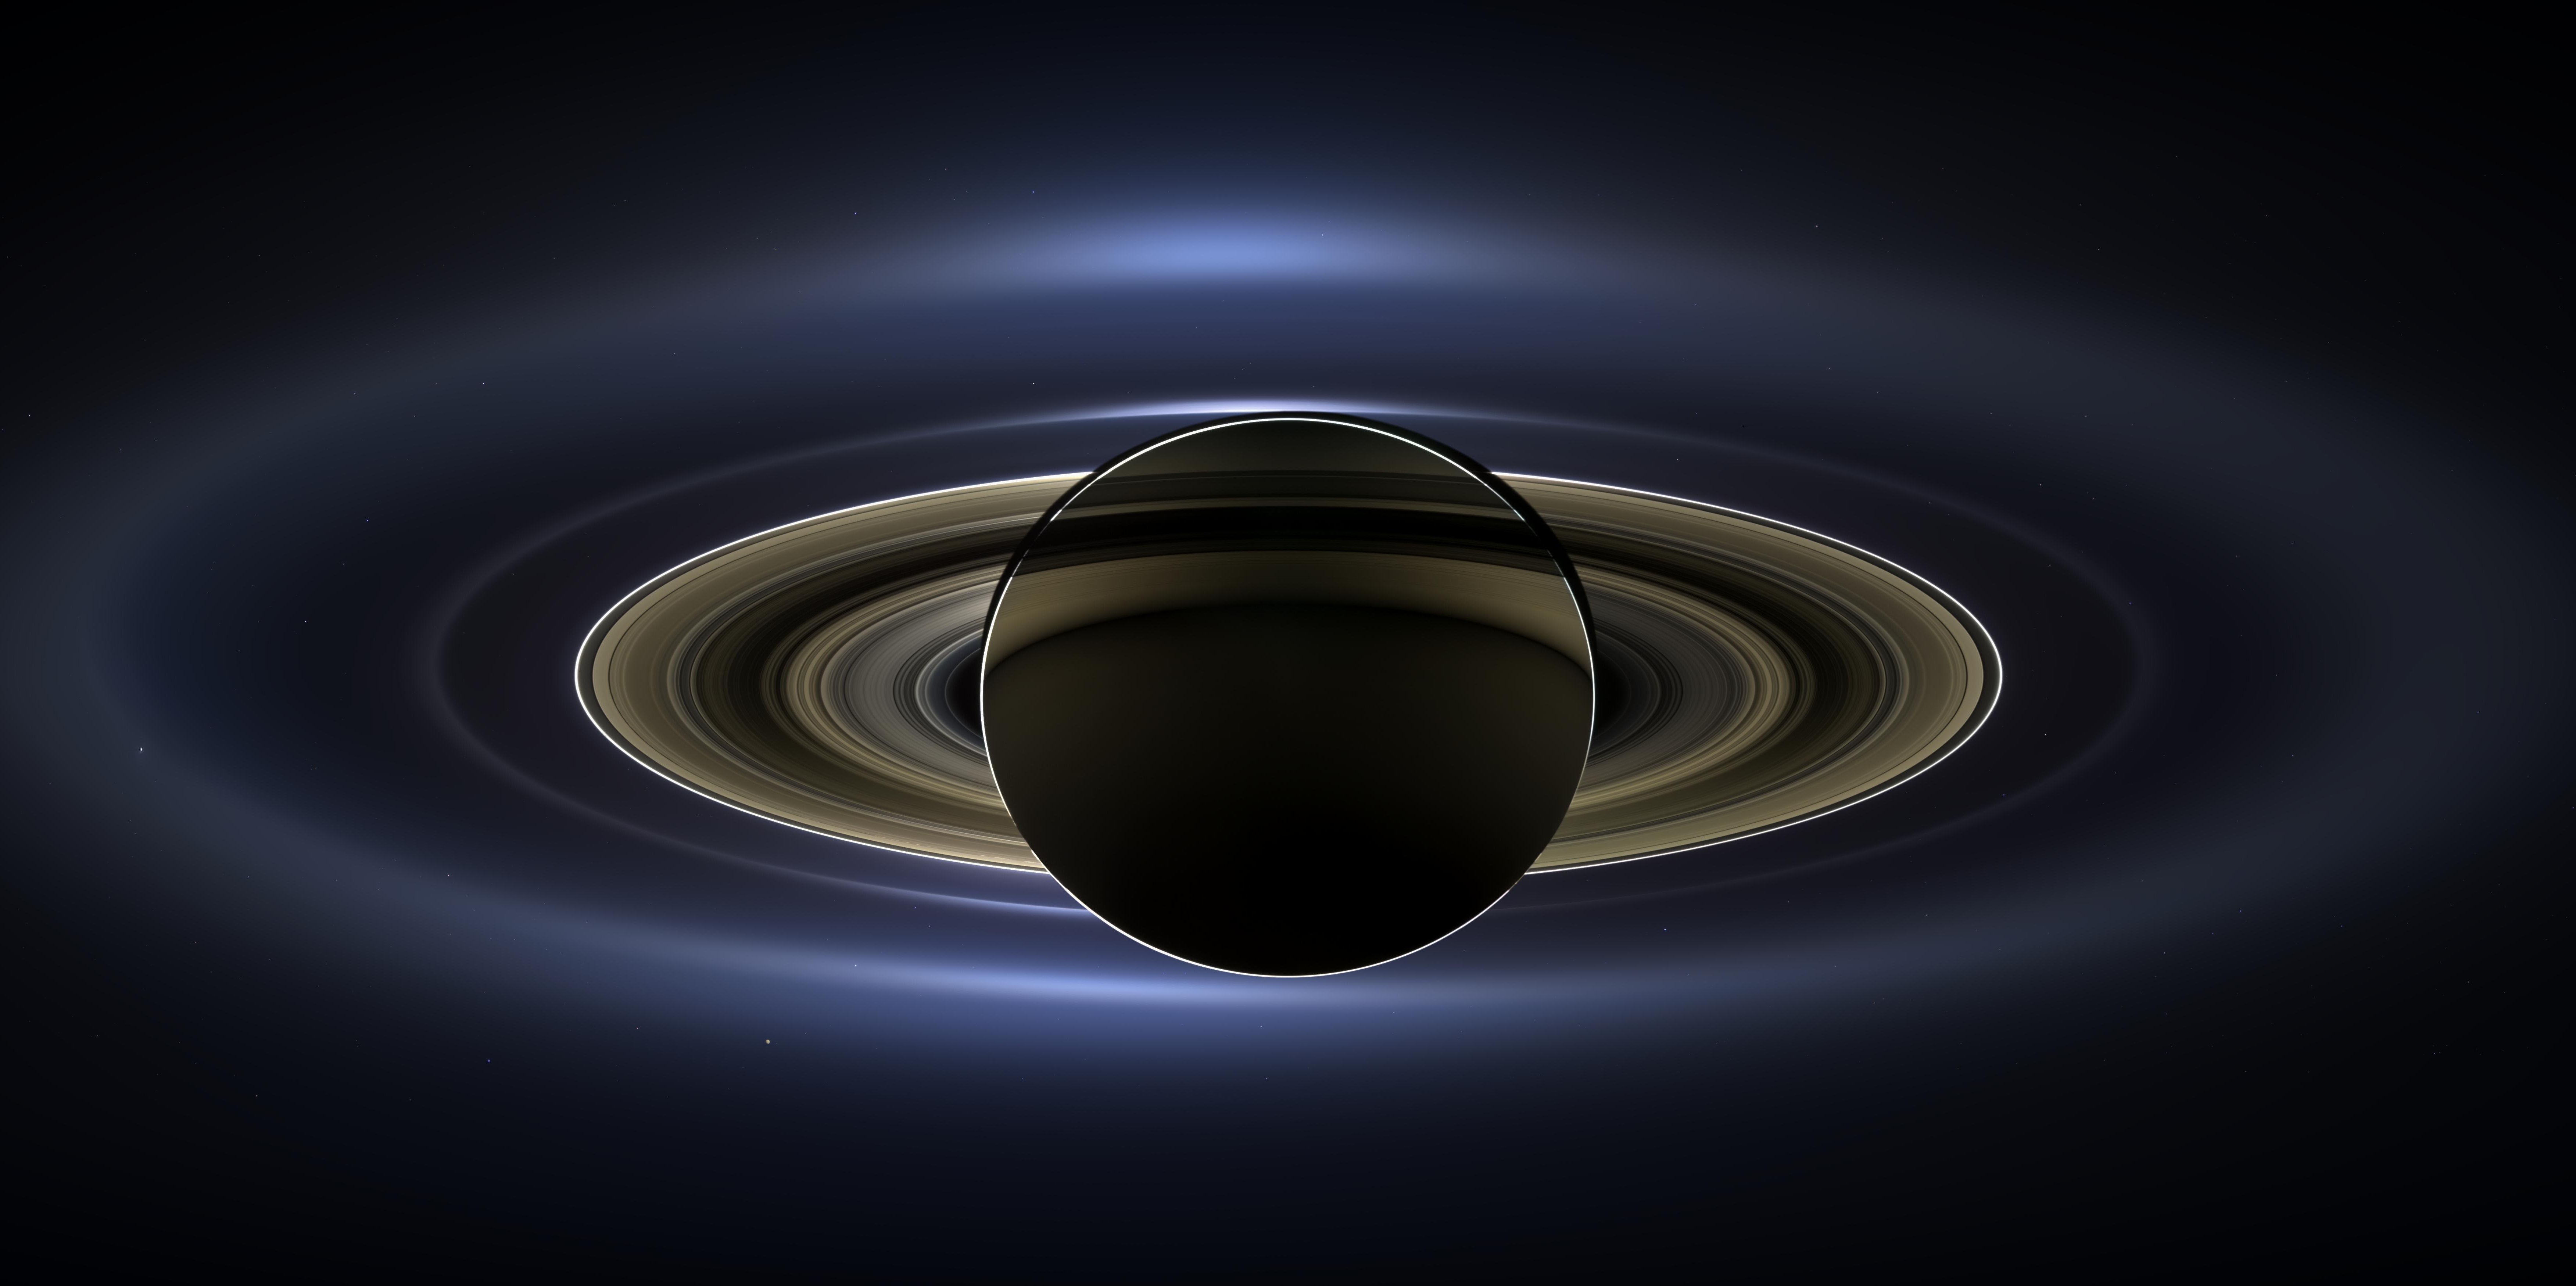 Saturn, the planet currently hosting the Cassini spacecraft and where many of the more excitable among us believe there are definitely aliens.